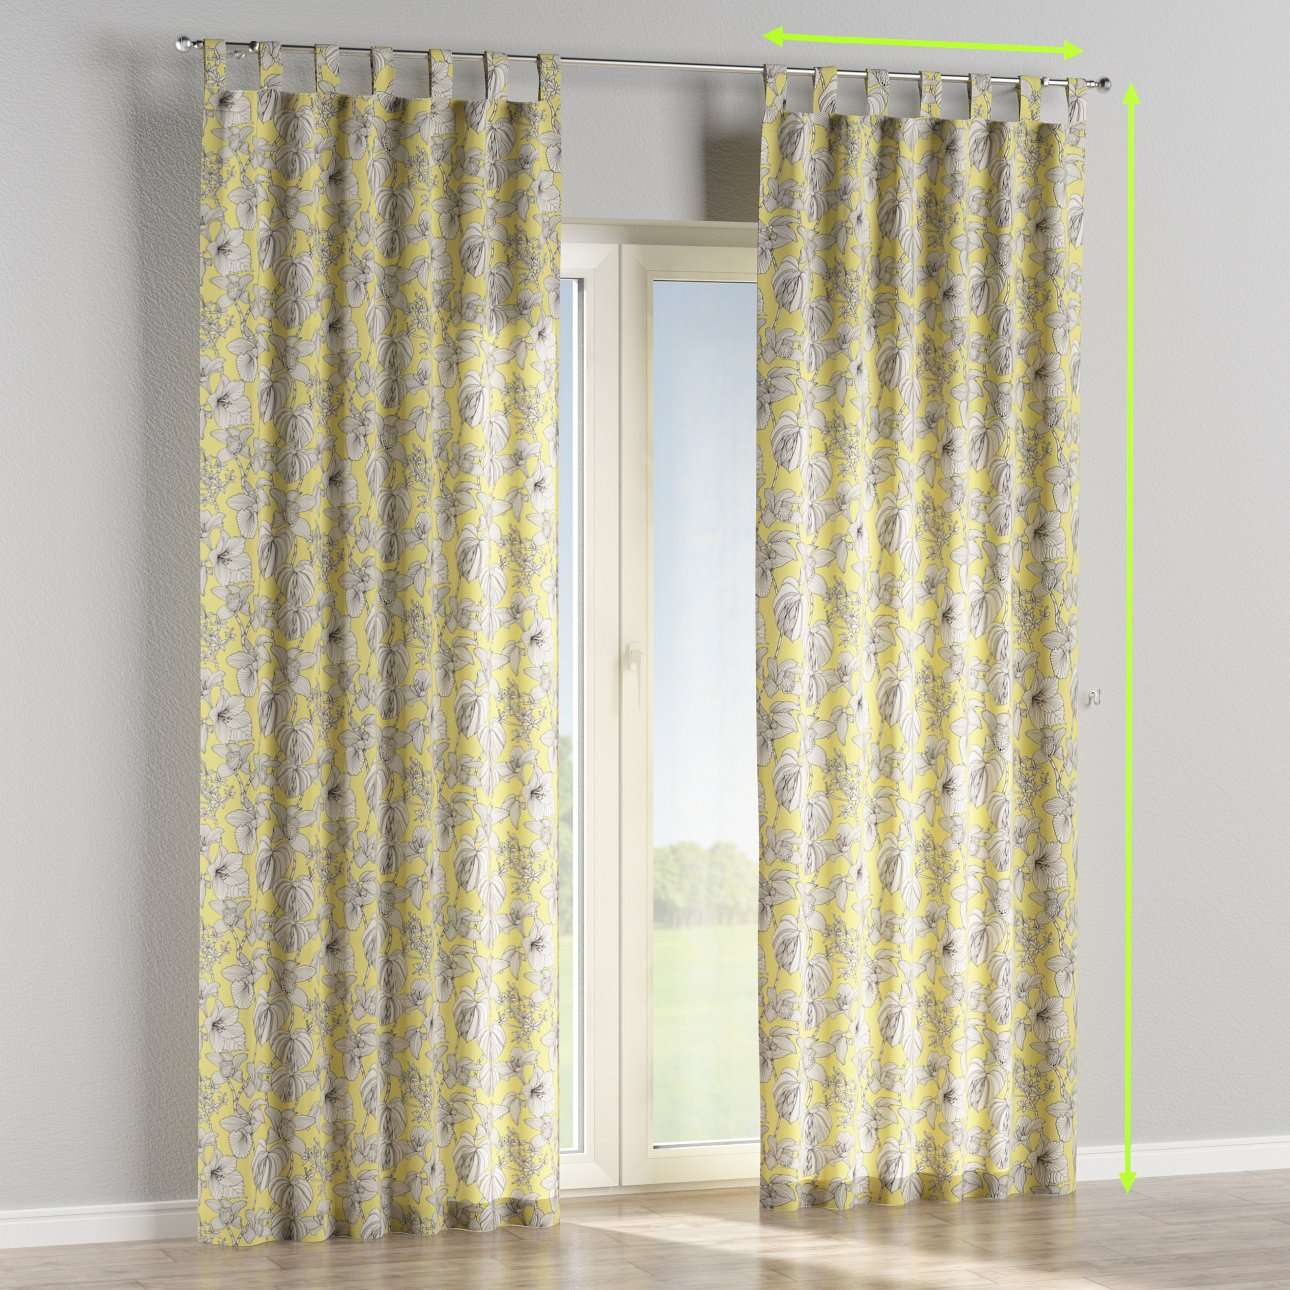 Tab top lined curtains in collection Brooklyn, fabric: 137-78